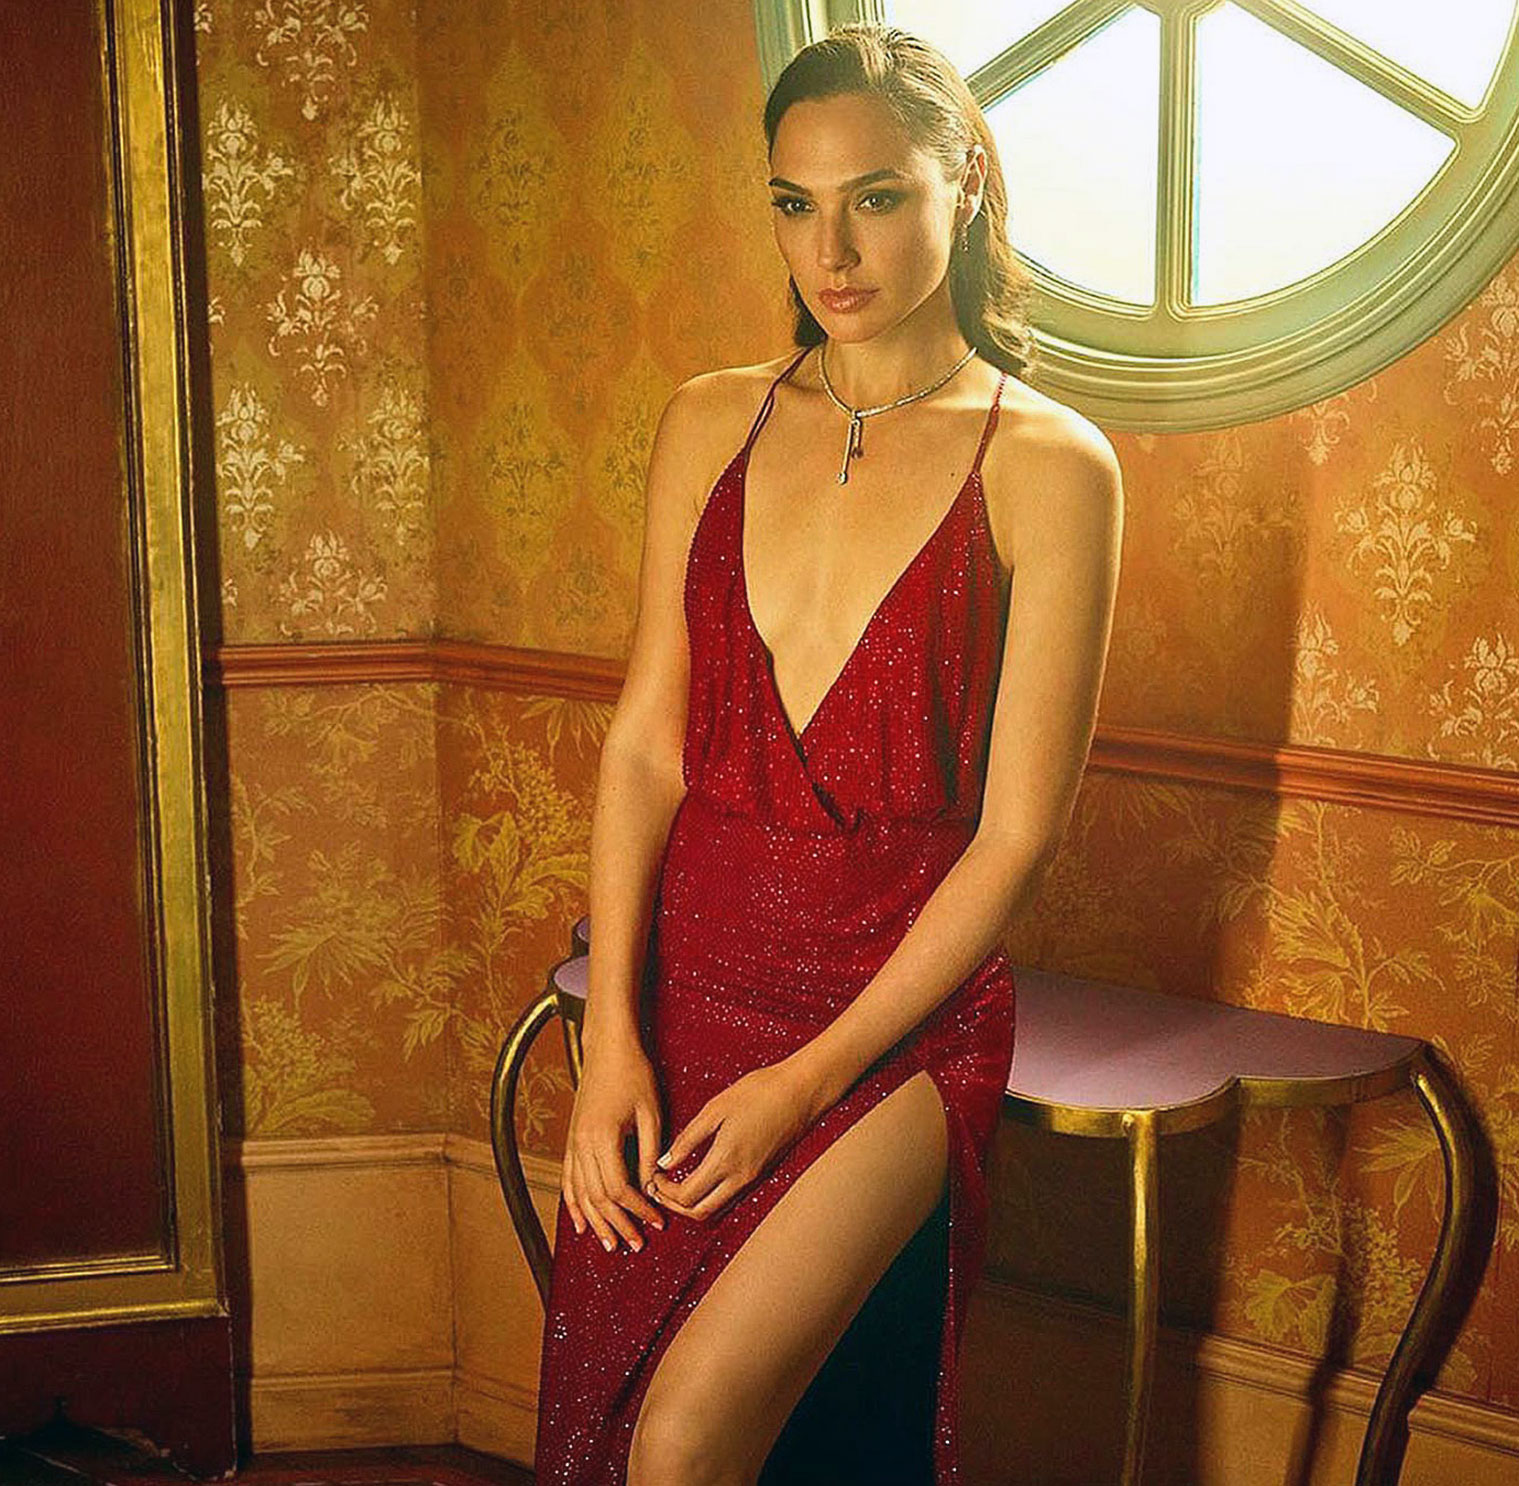 Gal Gadot see through Pics 2021 - Celebrities Nude pics leaked